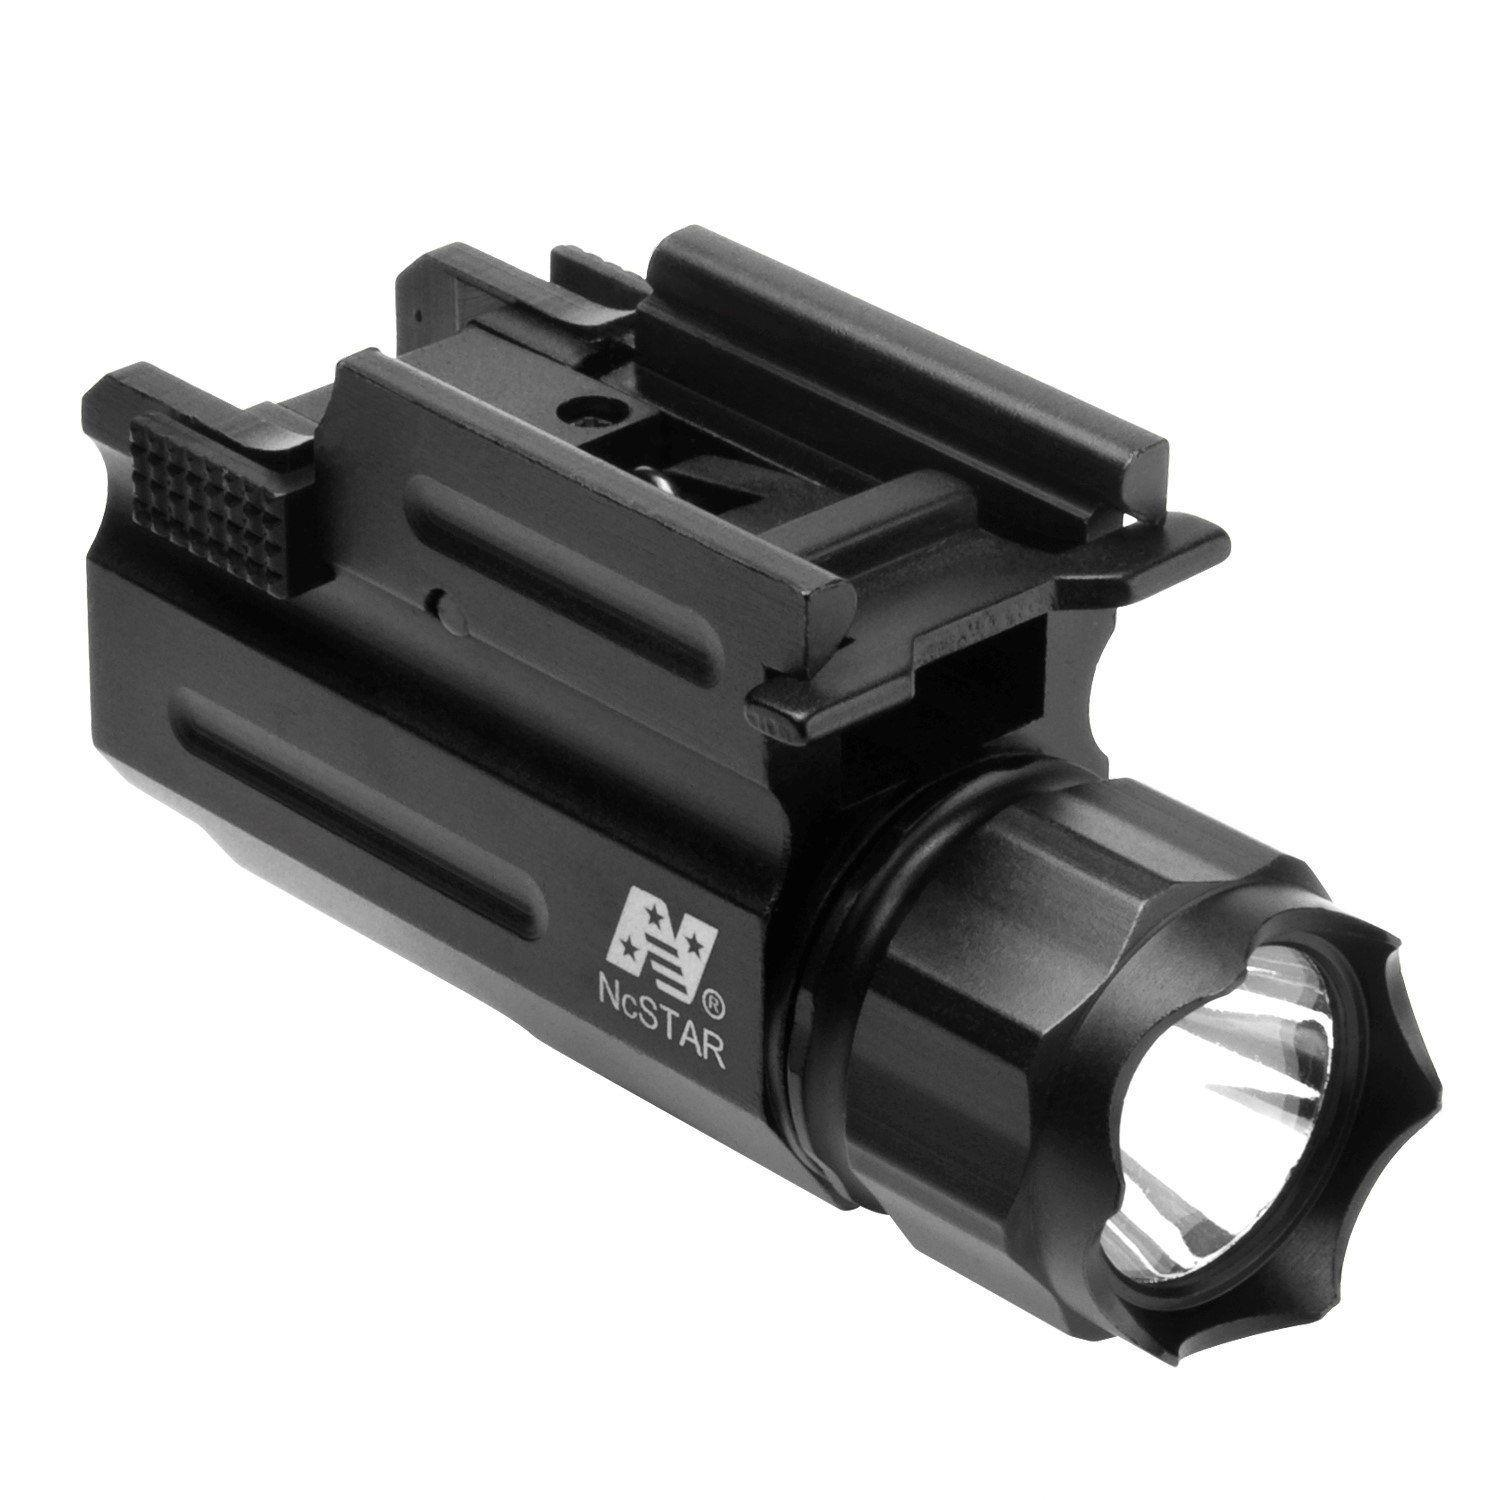 Ncstar Pistol And Rifle Led Flashlight